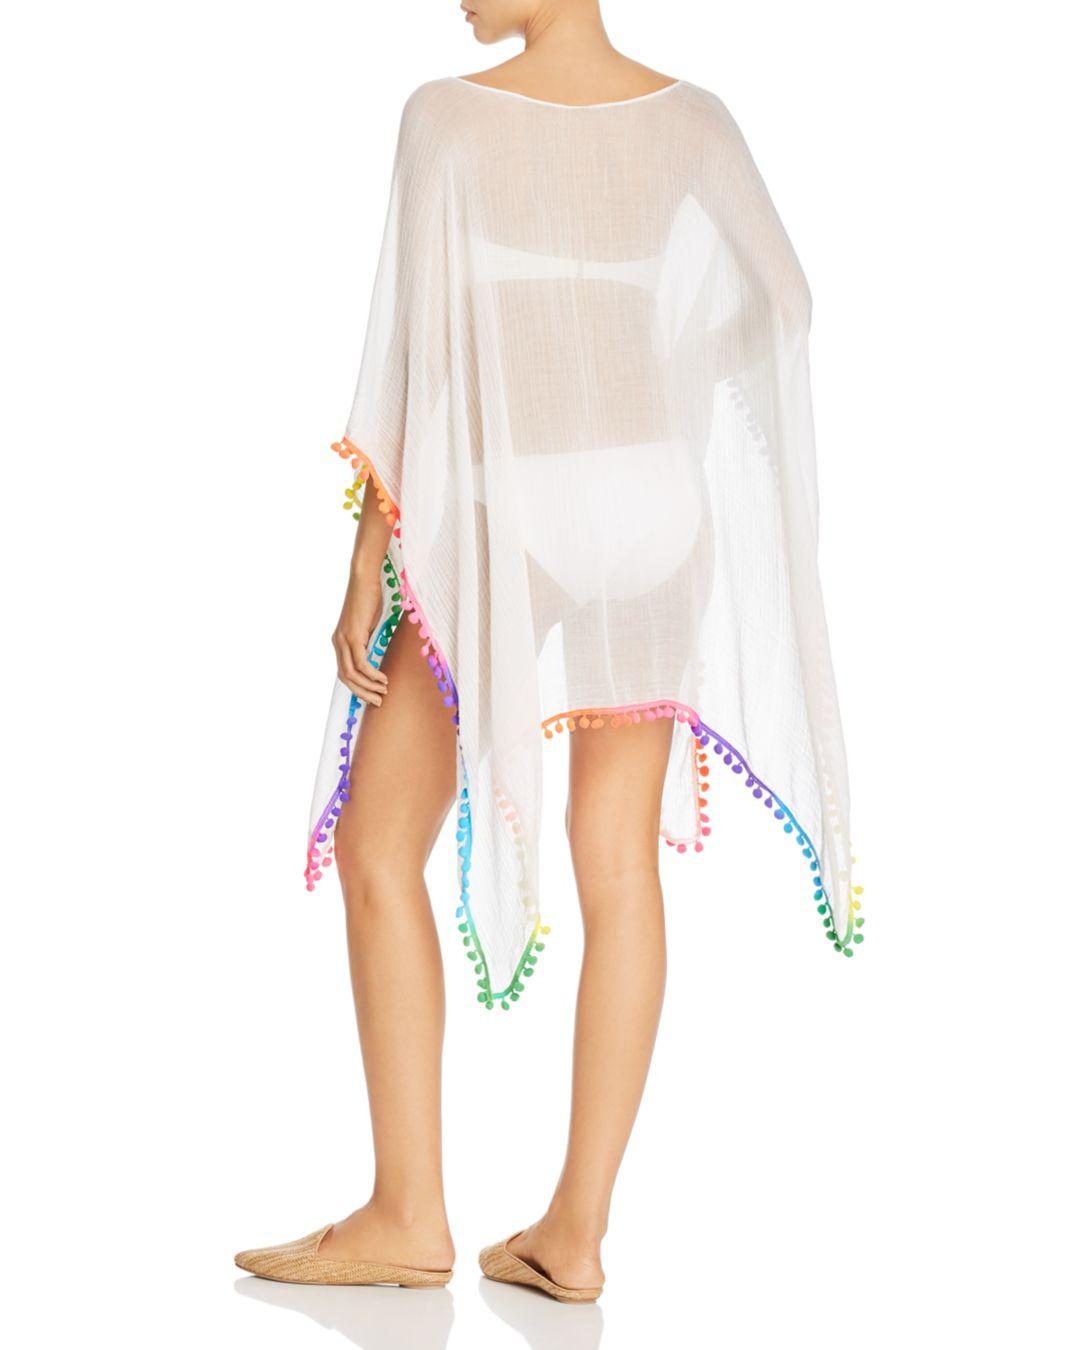 a5c04a2ade Echo Pom-pom Caftan Swim Cover-up in White - Lyst